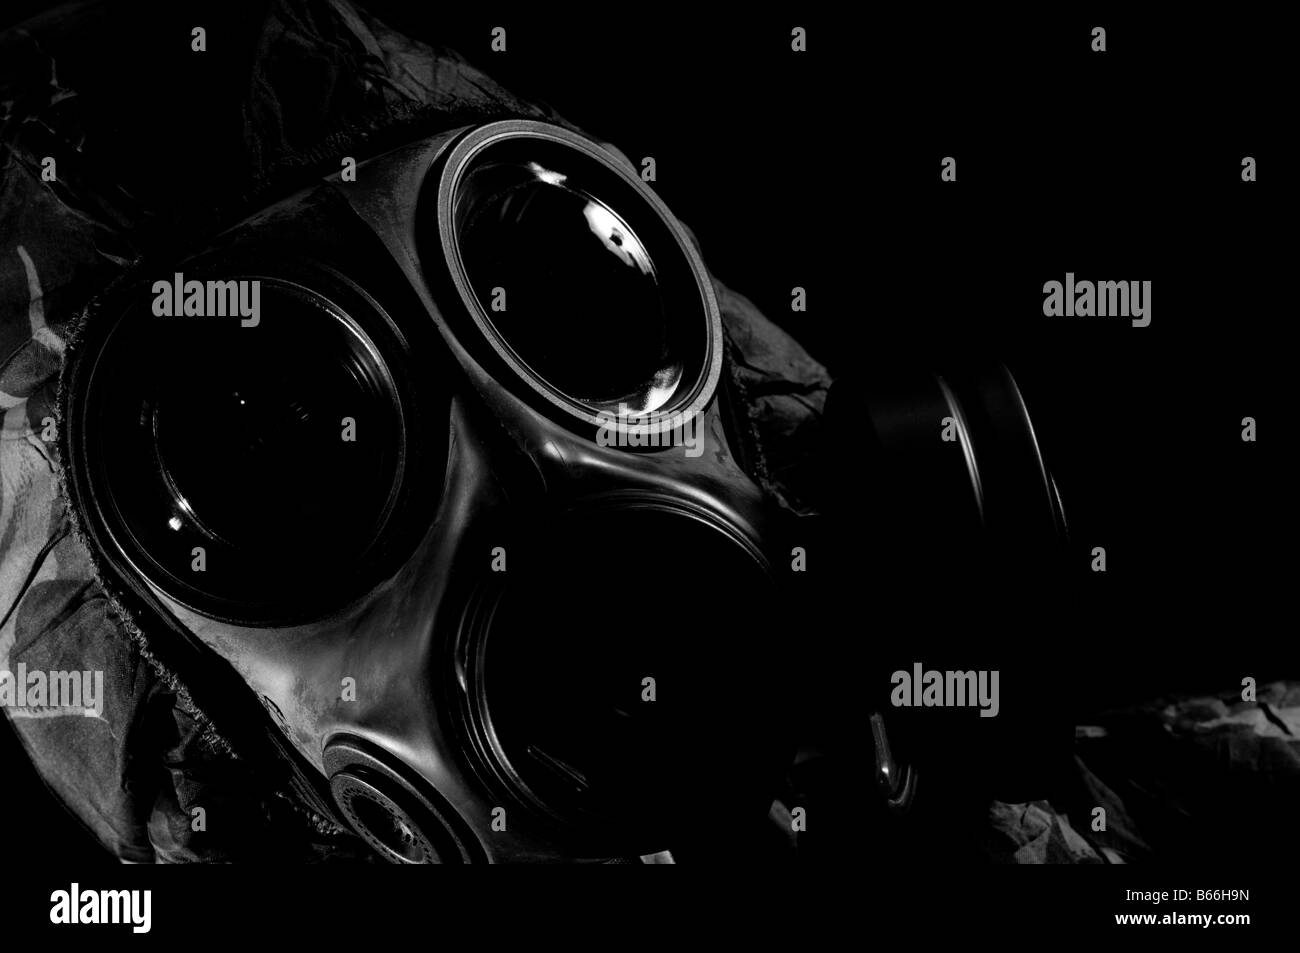 Soldier in respirator and protective suit - Stock Image